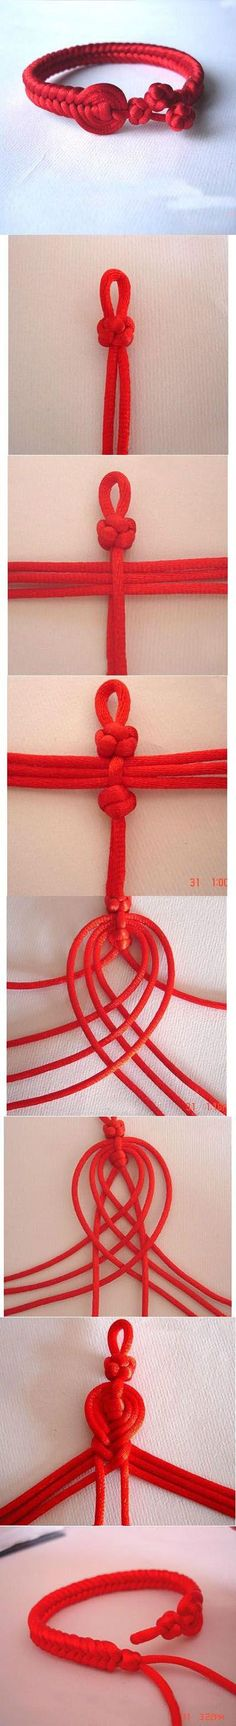 Beautiful Red Bracelet | DIY & Crafts Tutorials (I wonder if you could use para cord?)